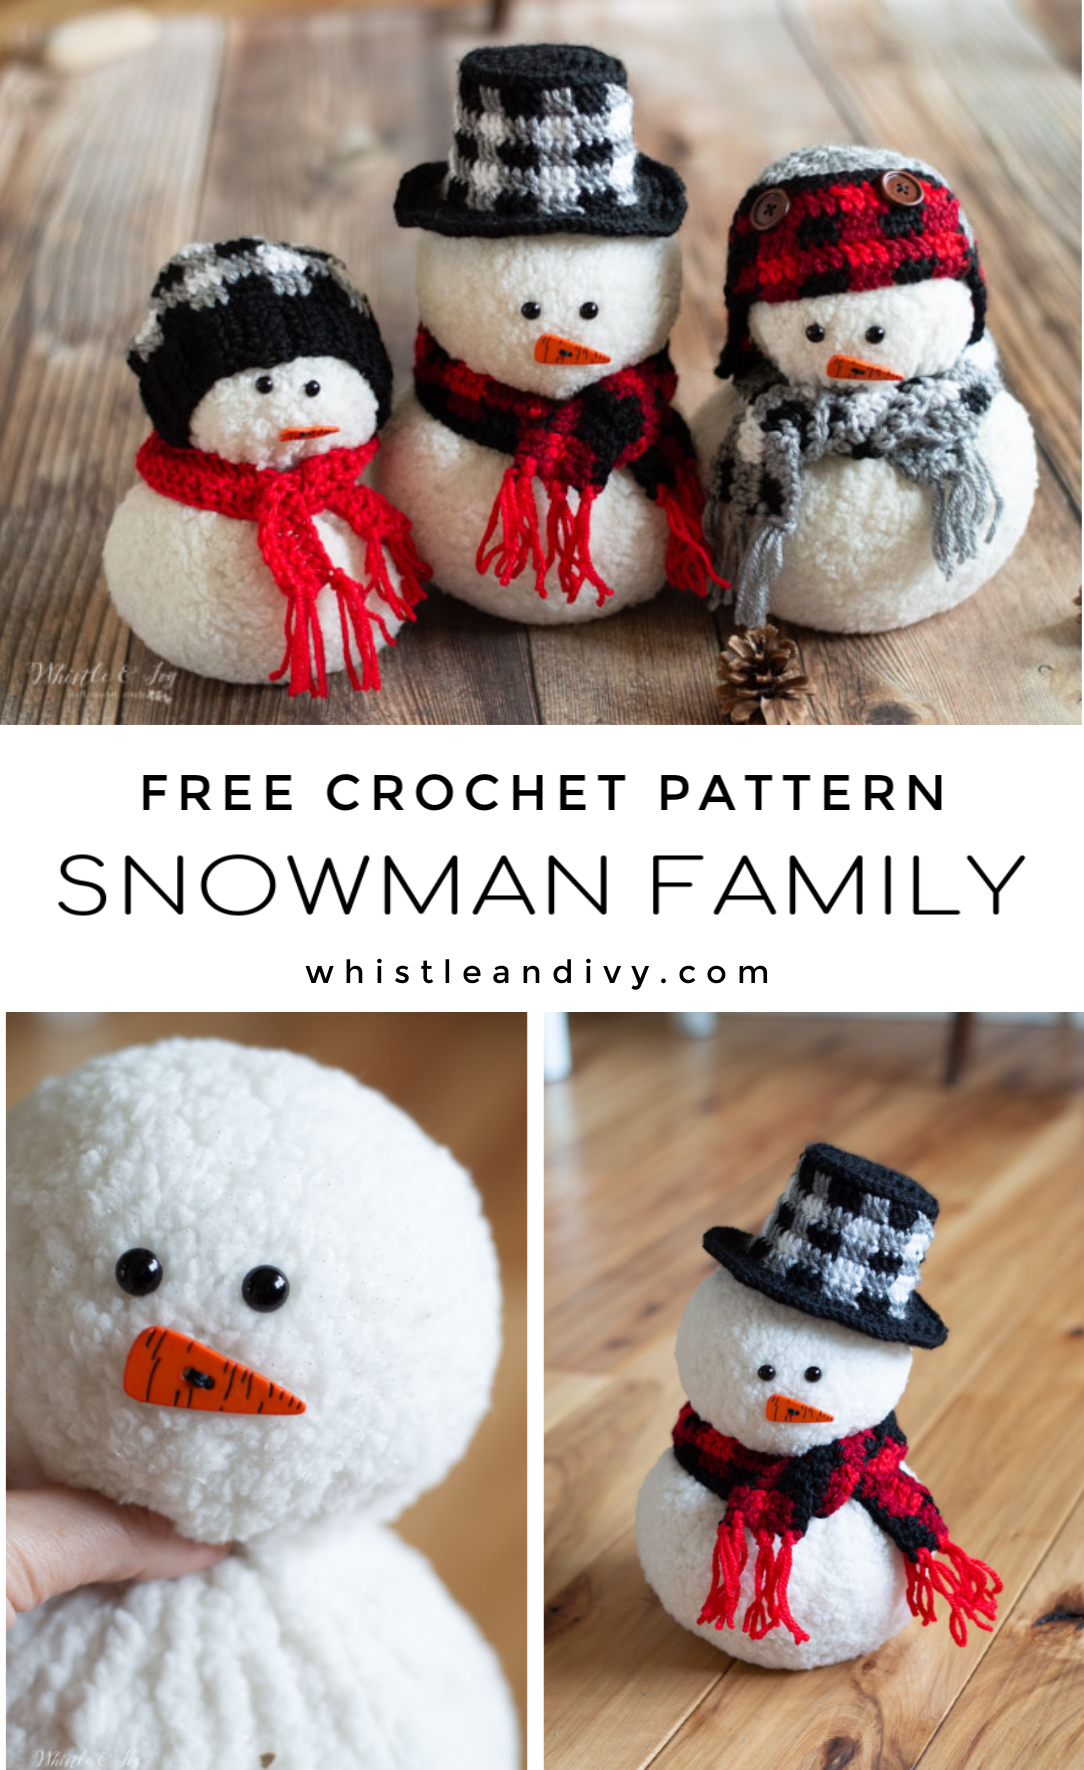 crochet snowman plaid crochet pattern